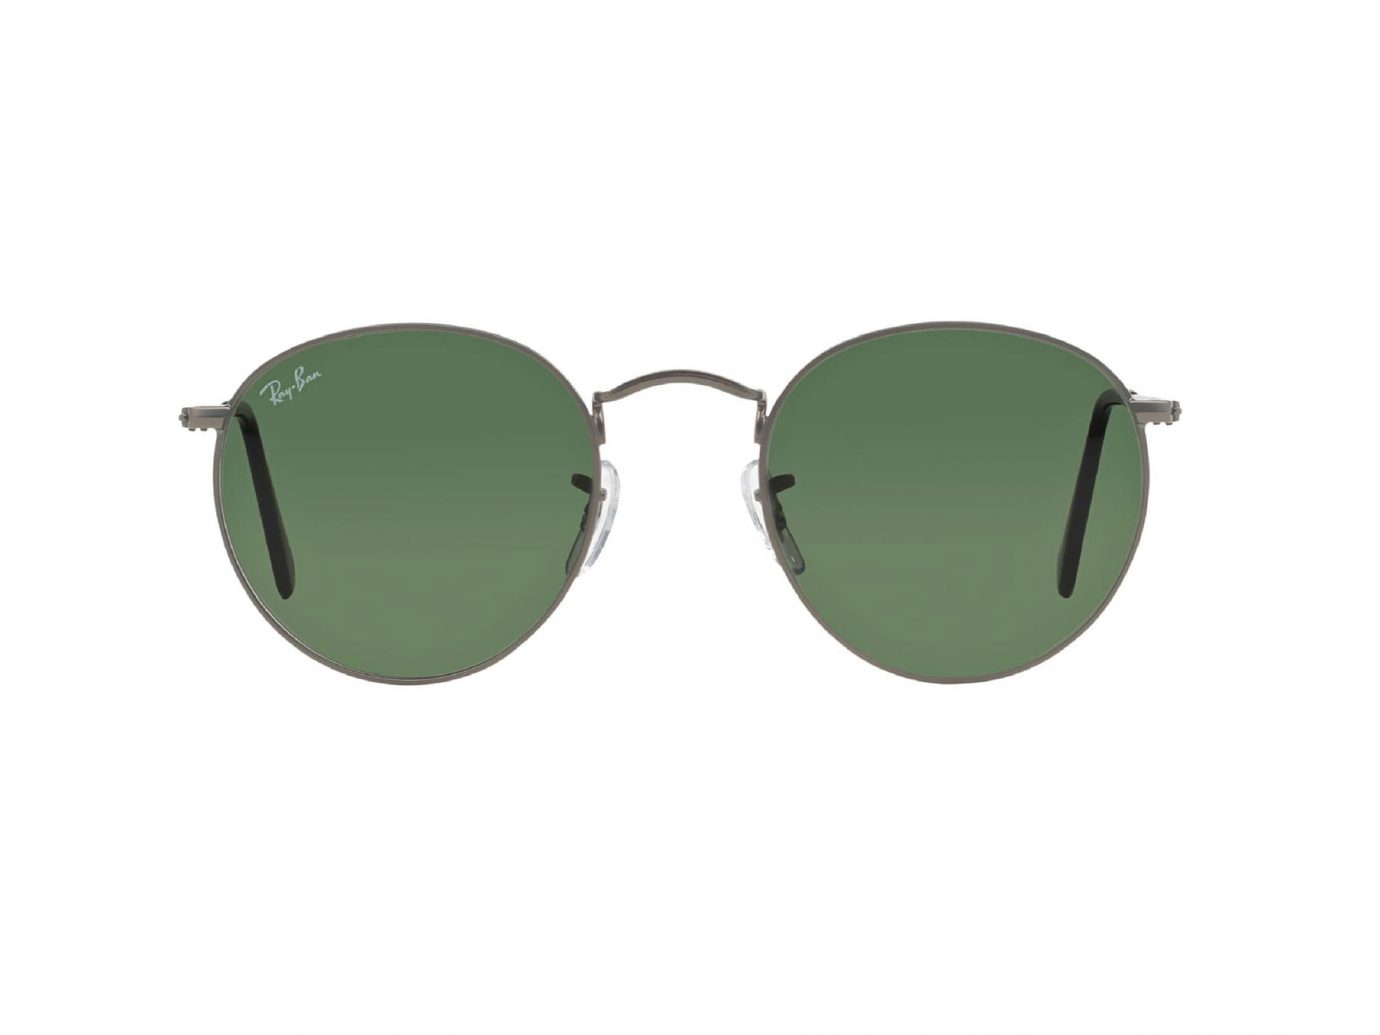 Ray-Ban Icons 53mm Retro Sunglass